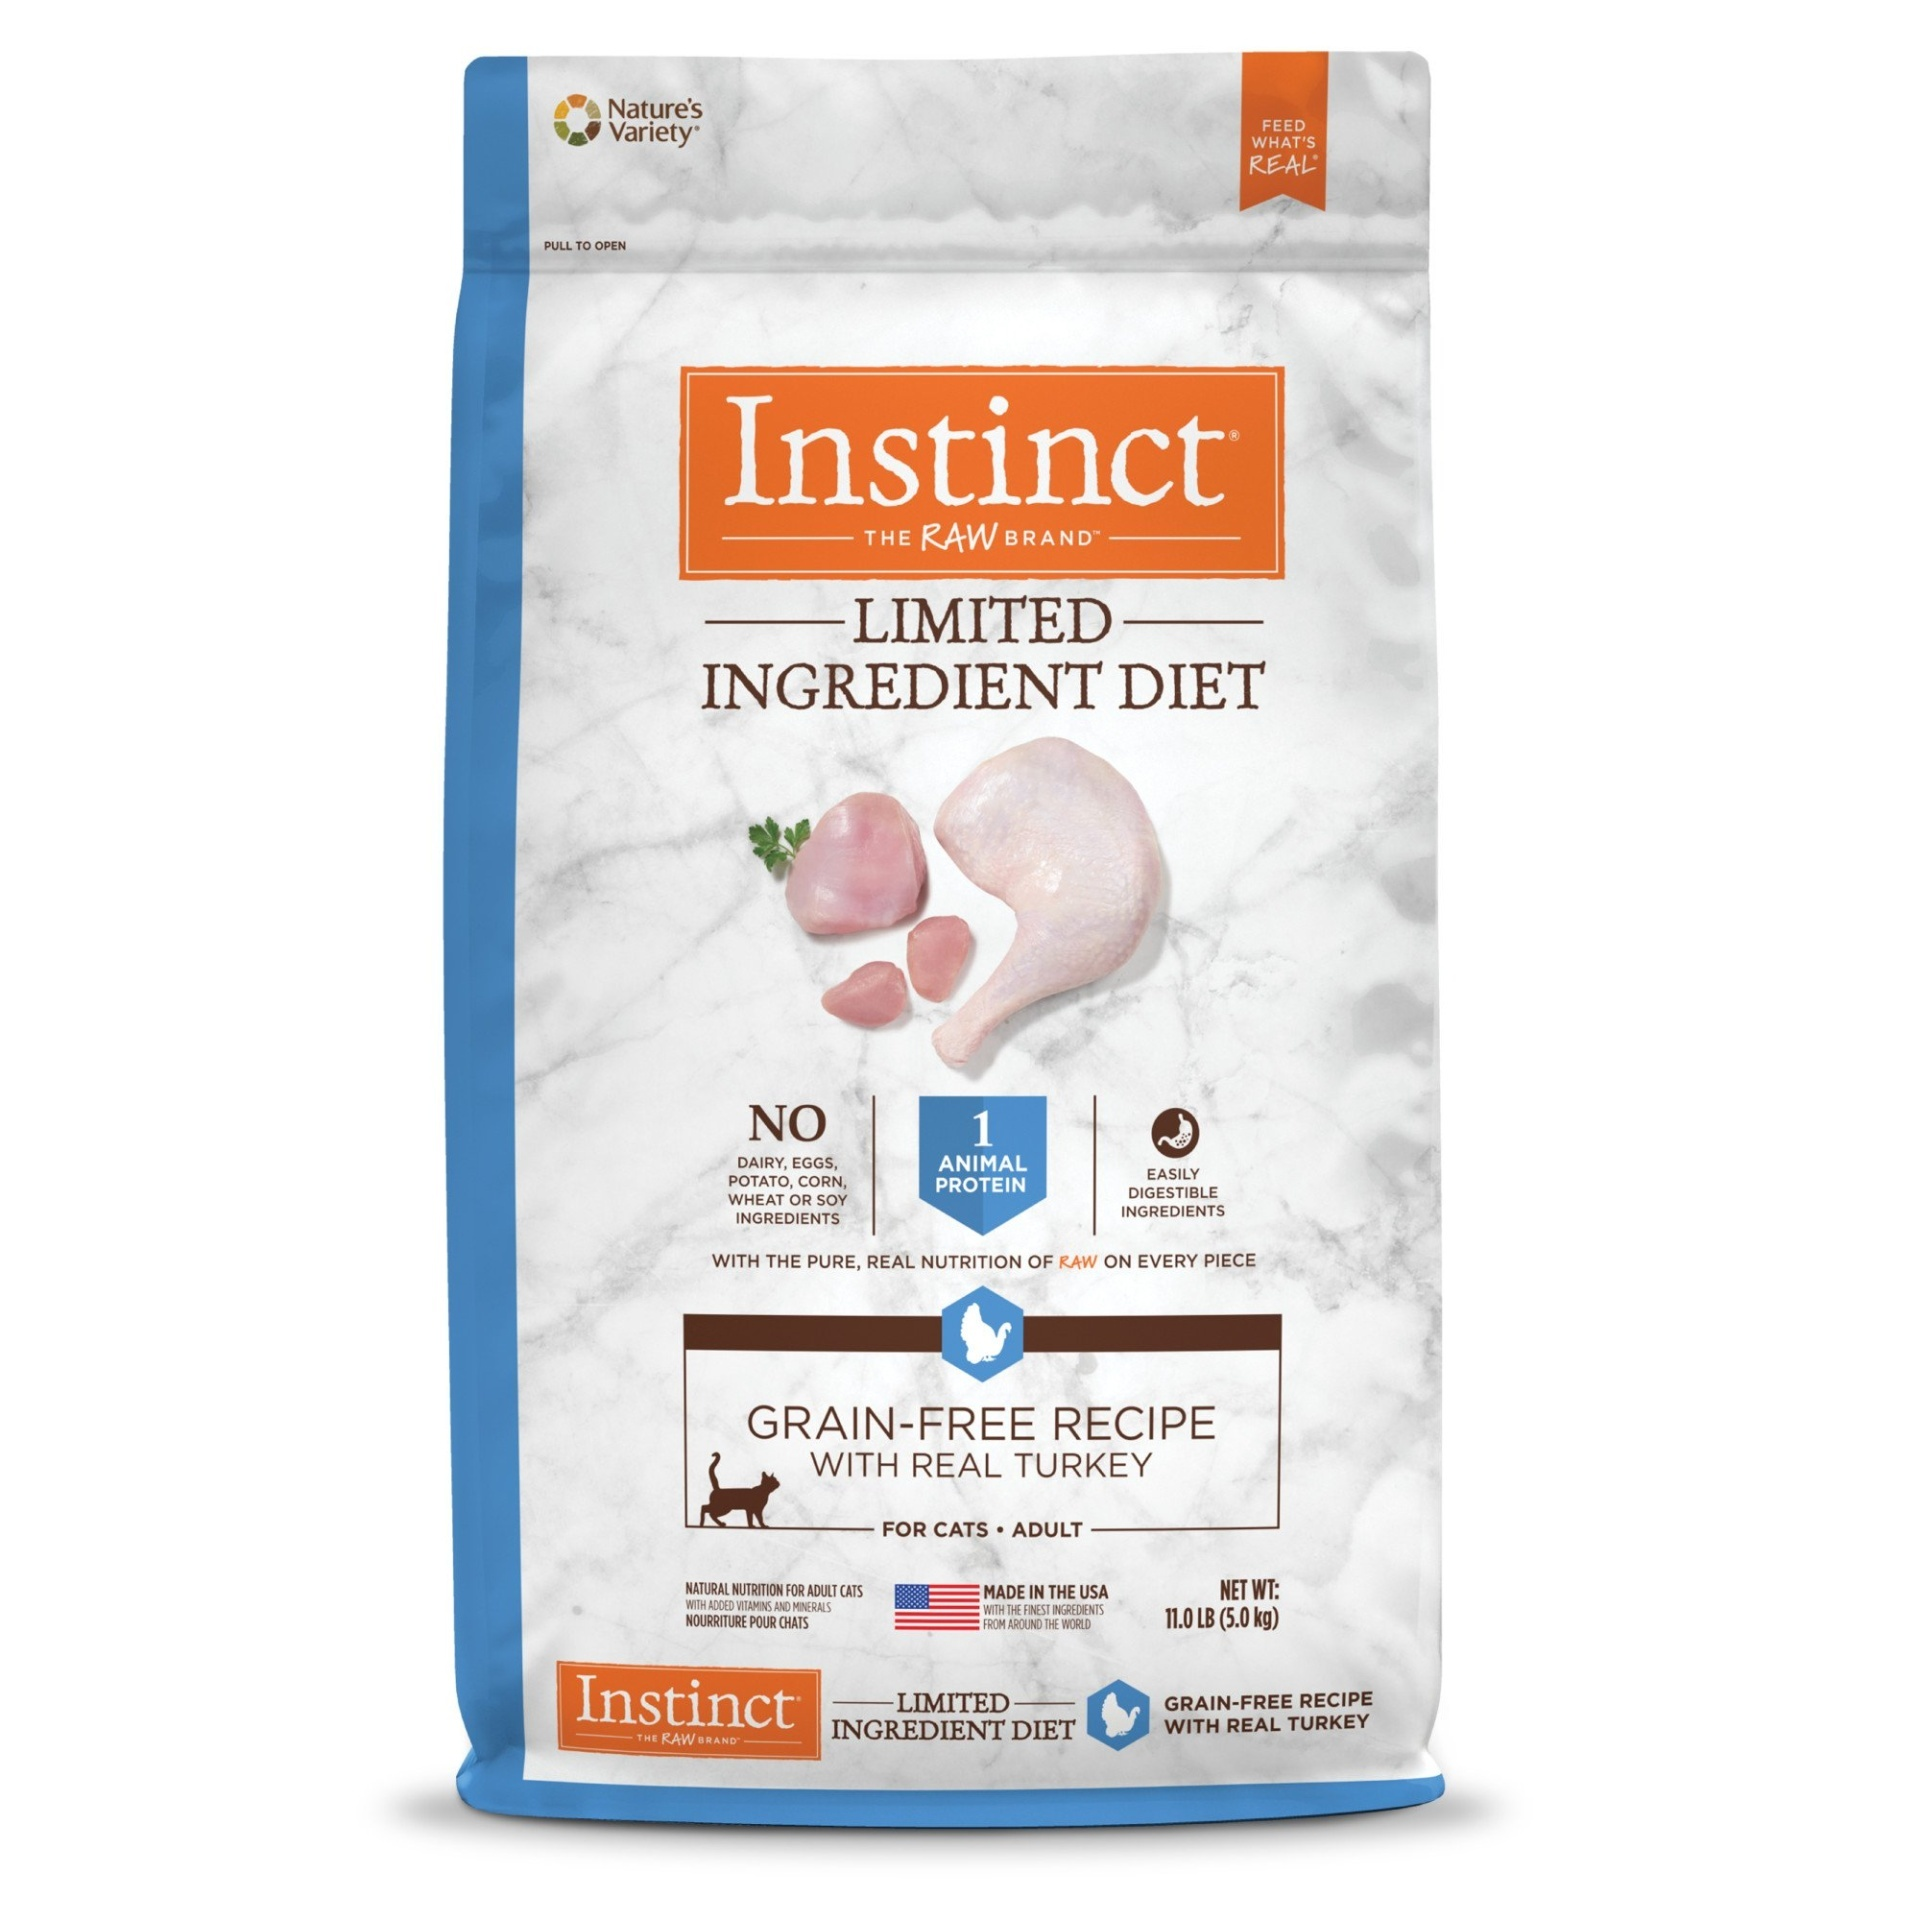 slide 1 of 1, Nature's Variety Instinct Limited Ingredient Diet Grain Free Recipe with Real Turkey Natural Dry Cat Food,